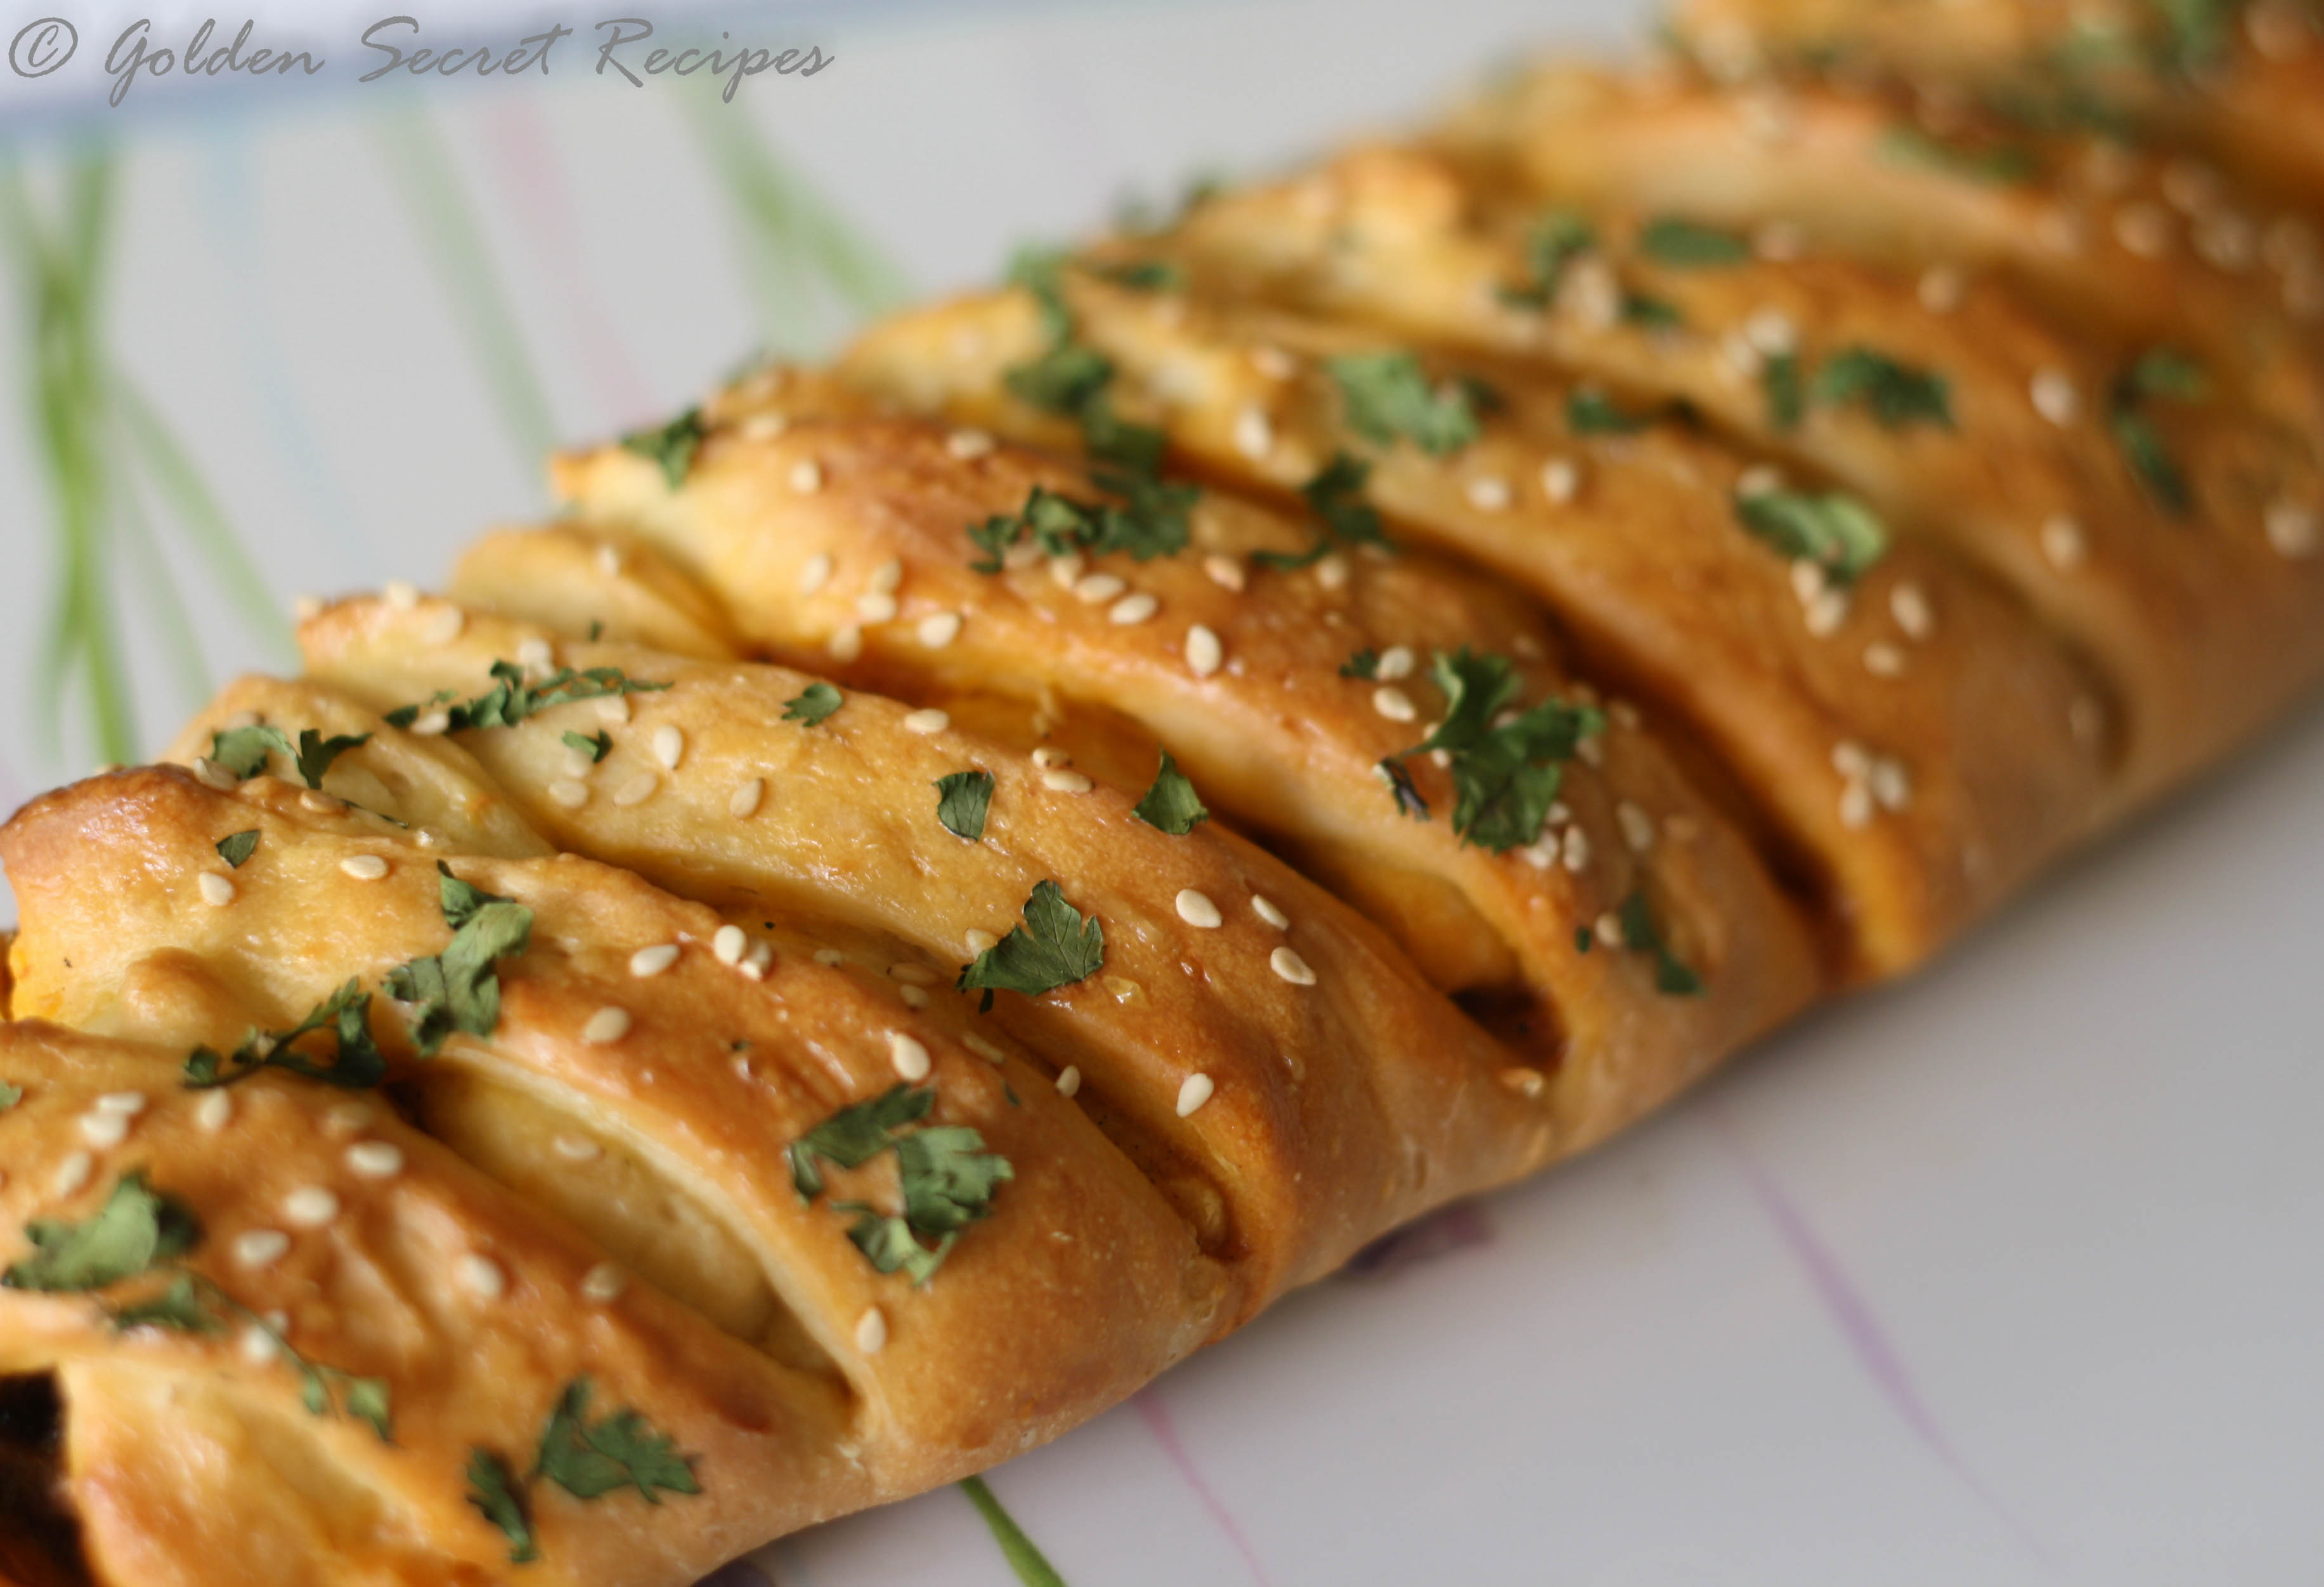 Stuffed Braided Bread | Golden Secret Recipes